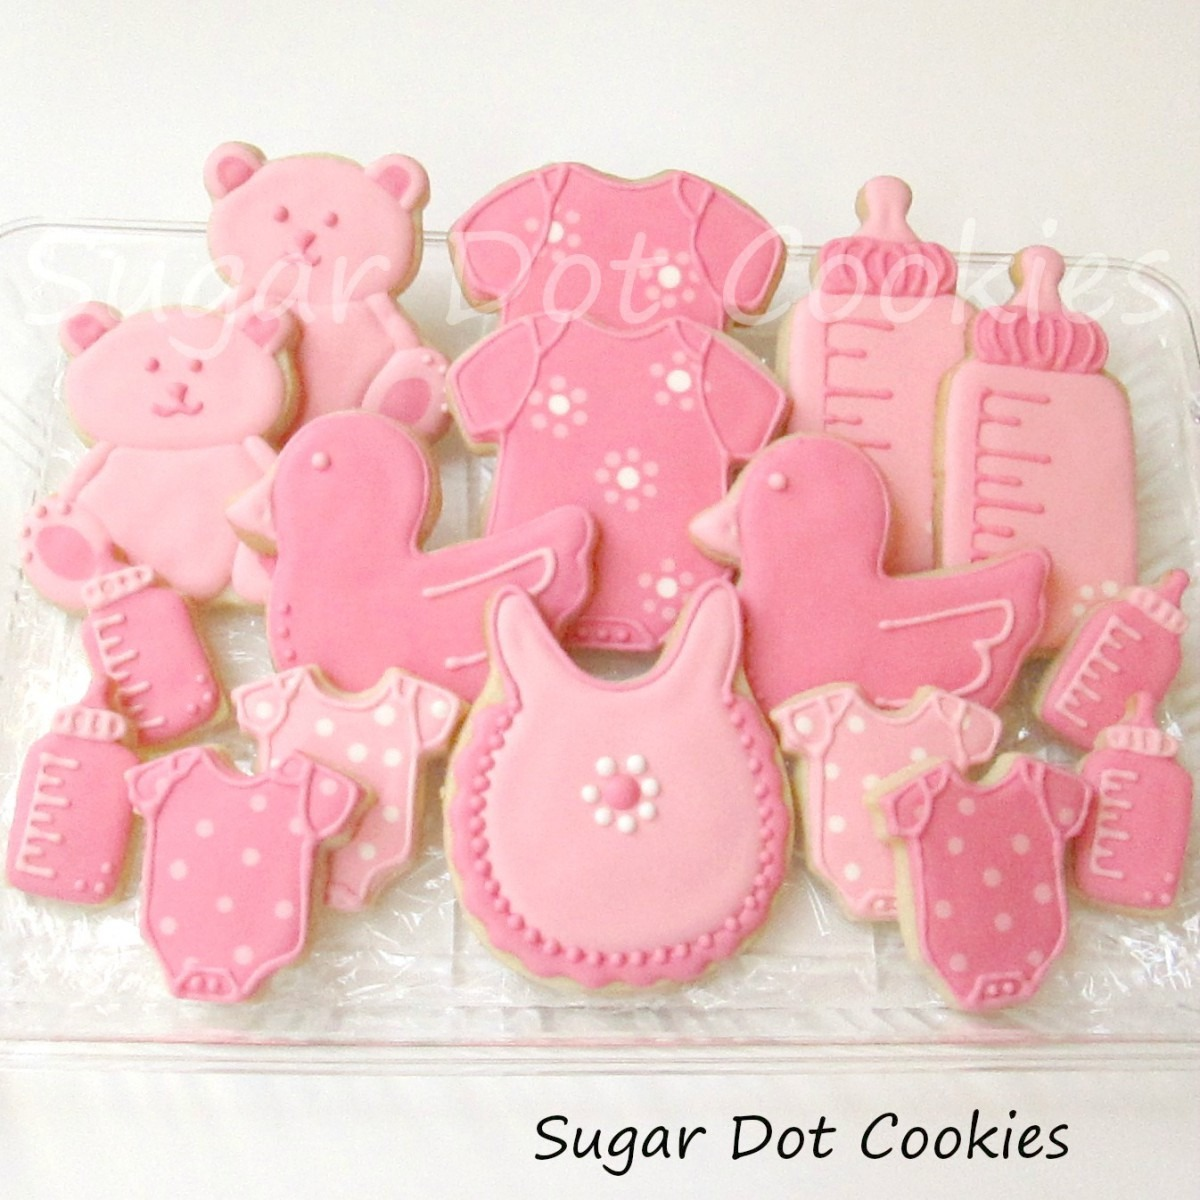 Sugar Dot Cookies  New Baby Sugar Cookies With Royal Icing